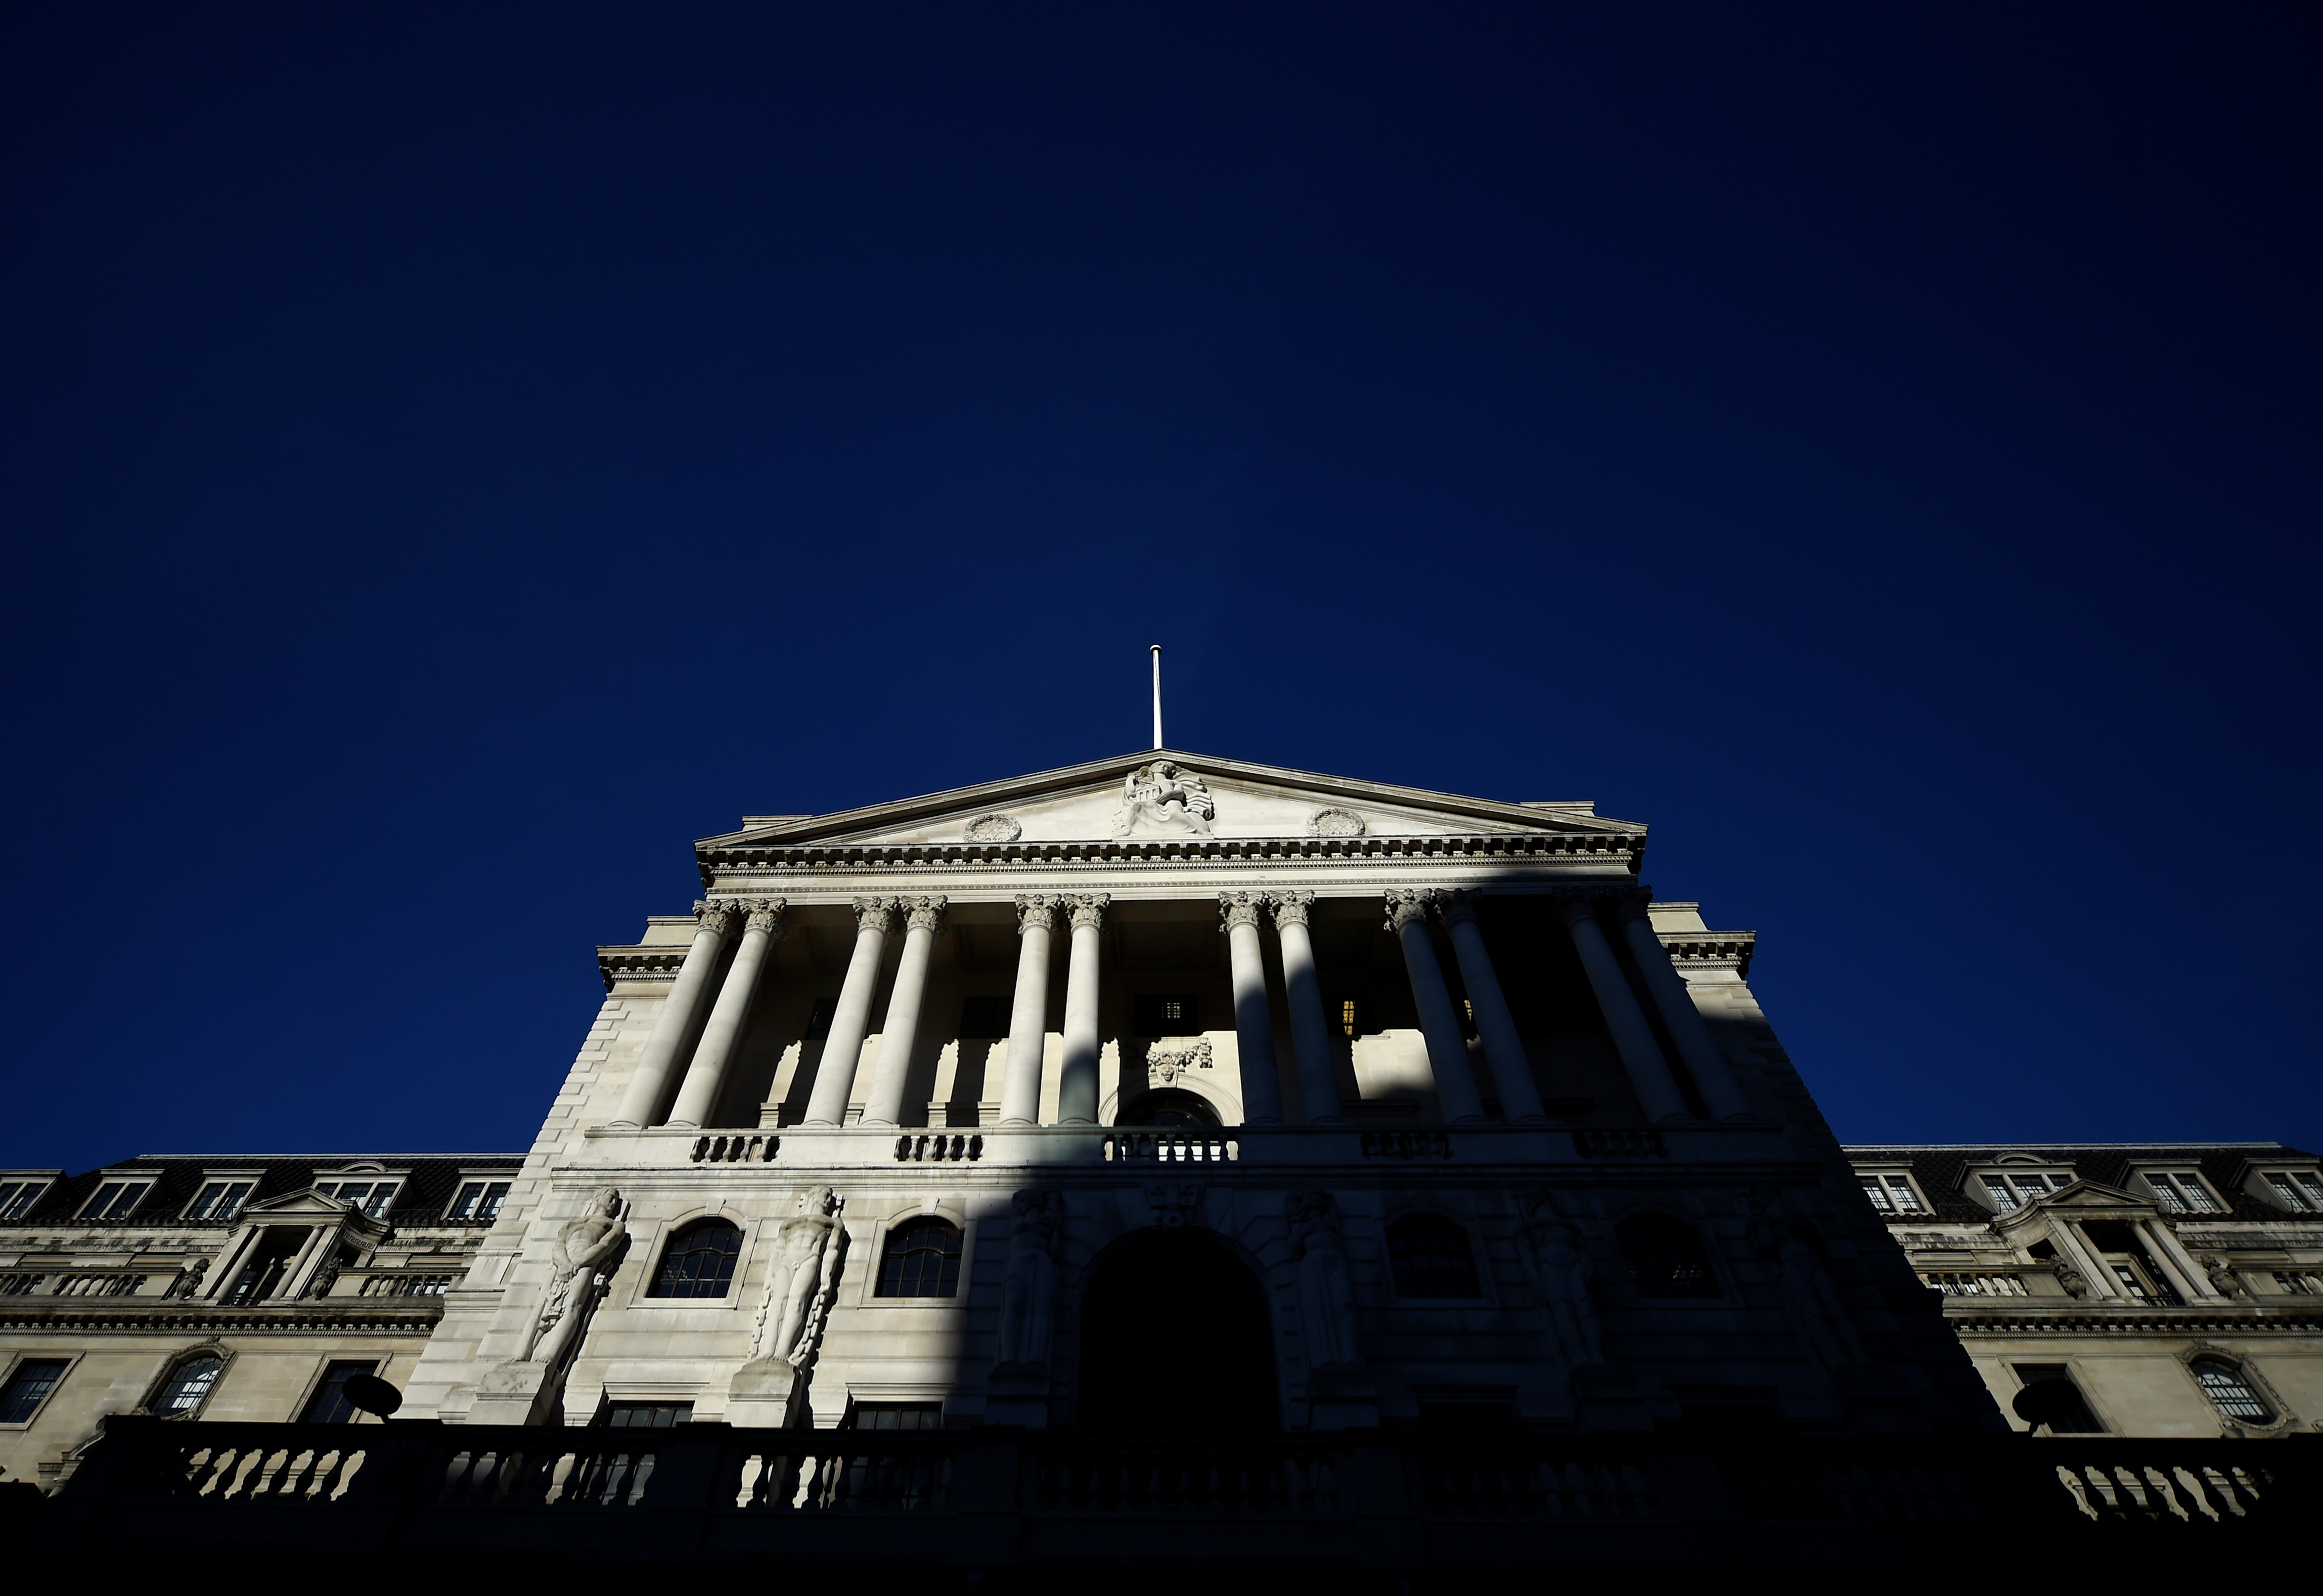 An adjacent building throws a shadow accross the Bank of England in the City of London, Britain, December 12, 2017. REUTERS/Clodagh Kilcoyne